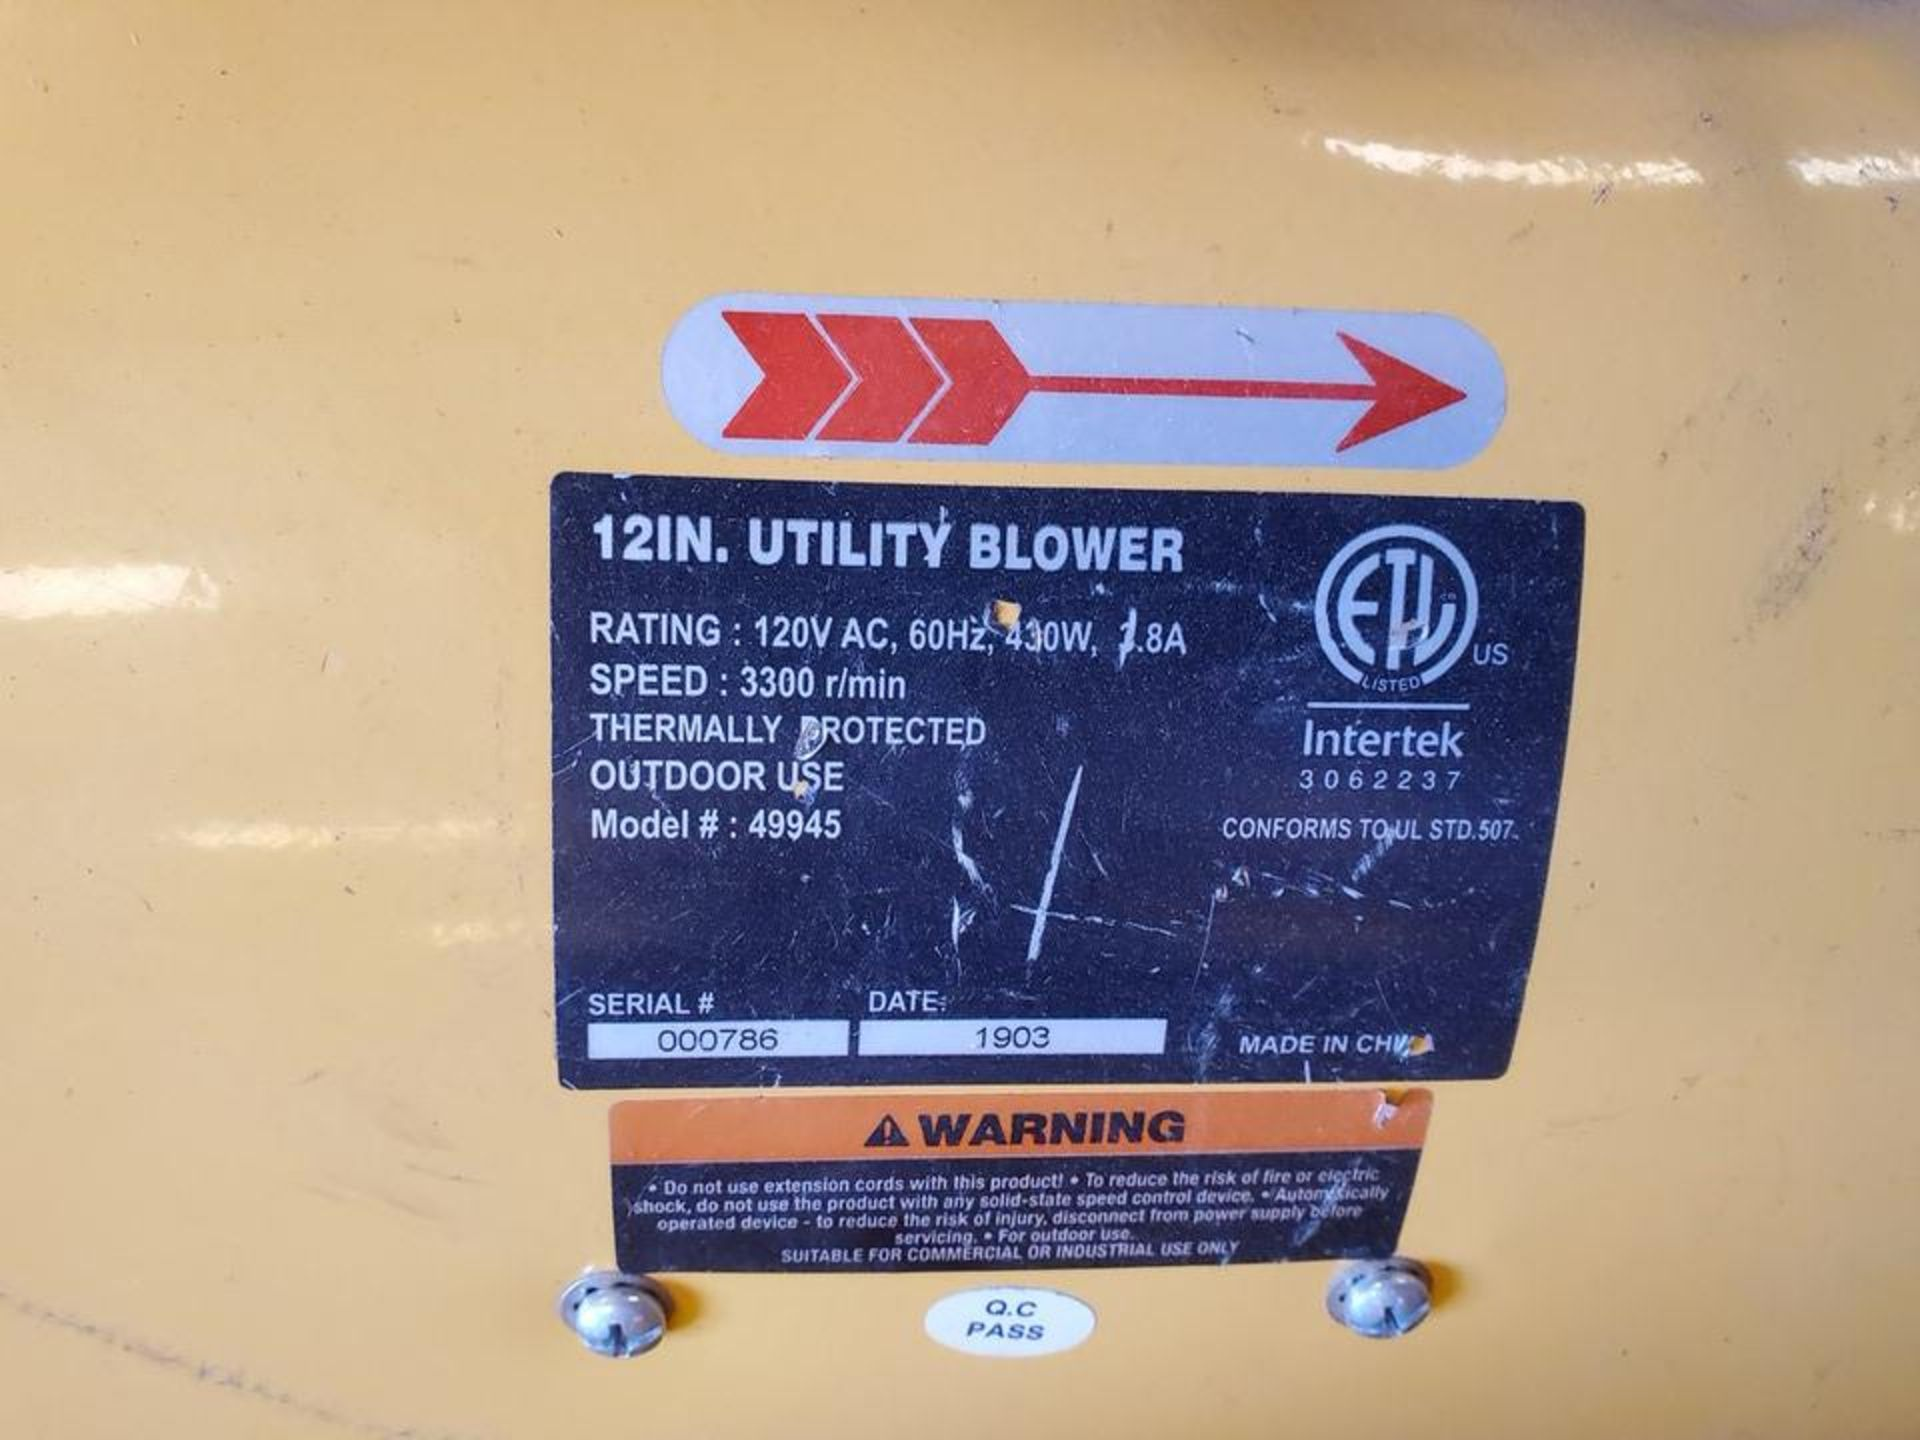 """Strongway (3) 12"""" Utility Blowers 120V, 430W, 1300RPM, 60HZ, 3.8A - Image 4 of 4"""